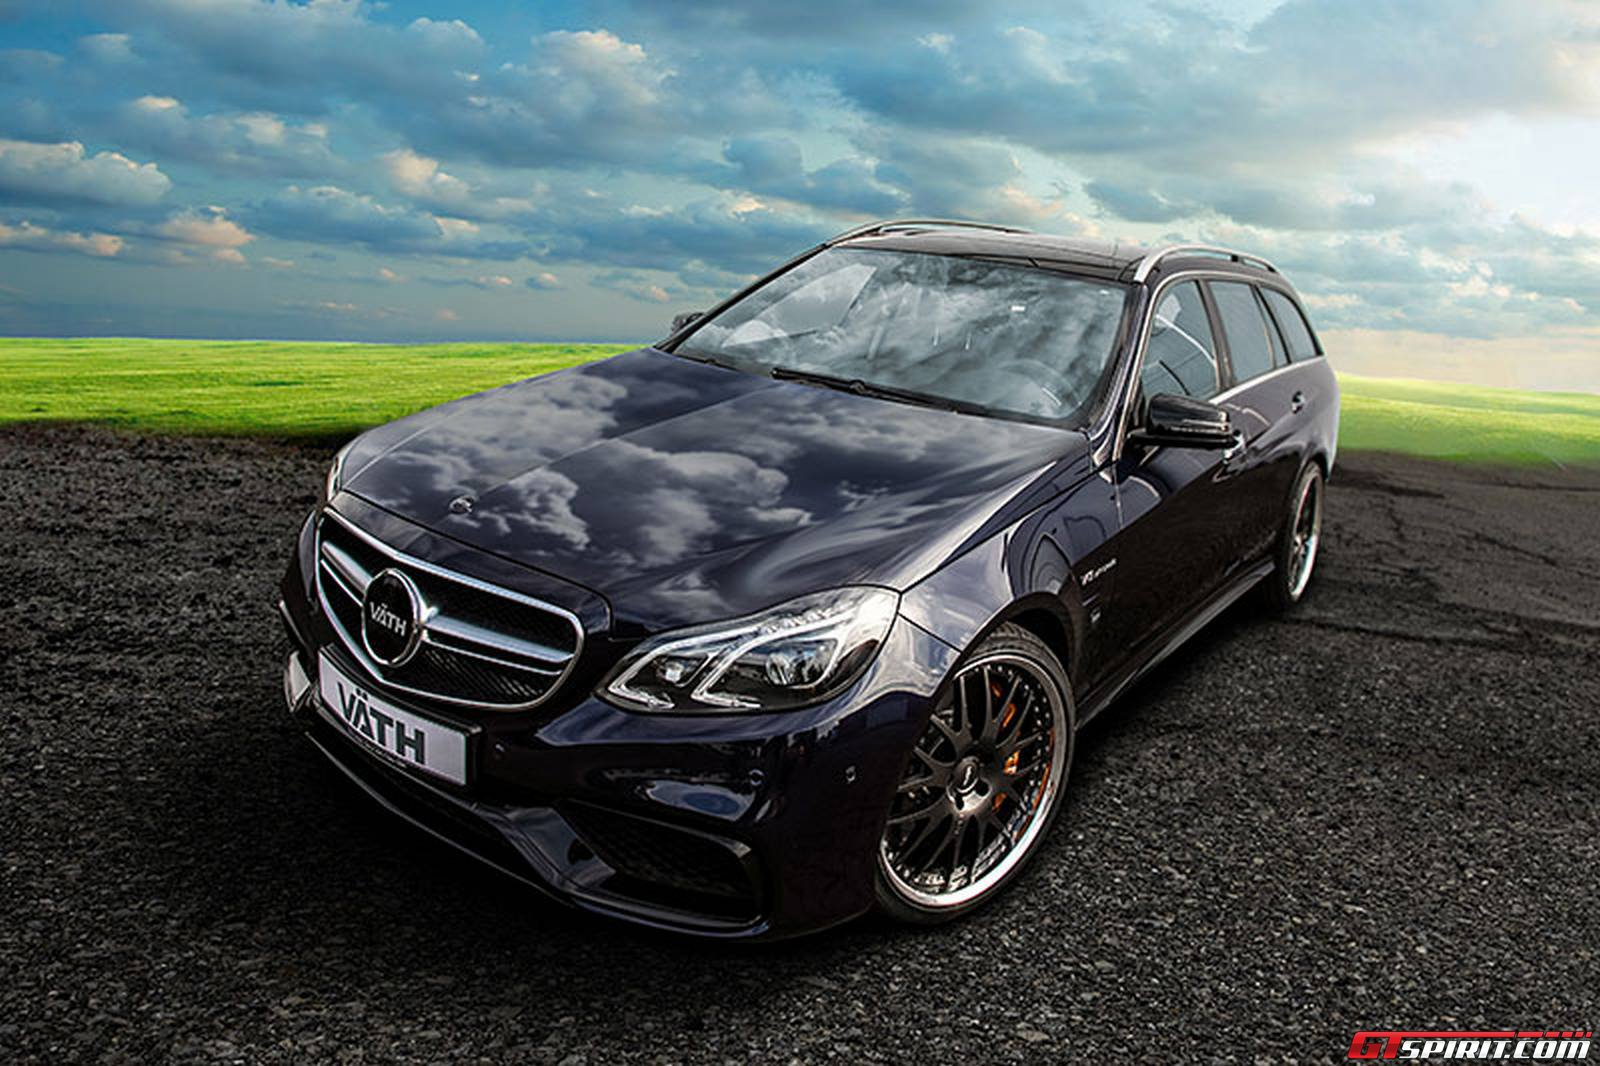 official mercedes benz e63 amg s by vath gtspirit. Black Bedroom Furniture Sets. Home Design Ideas